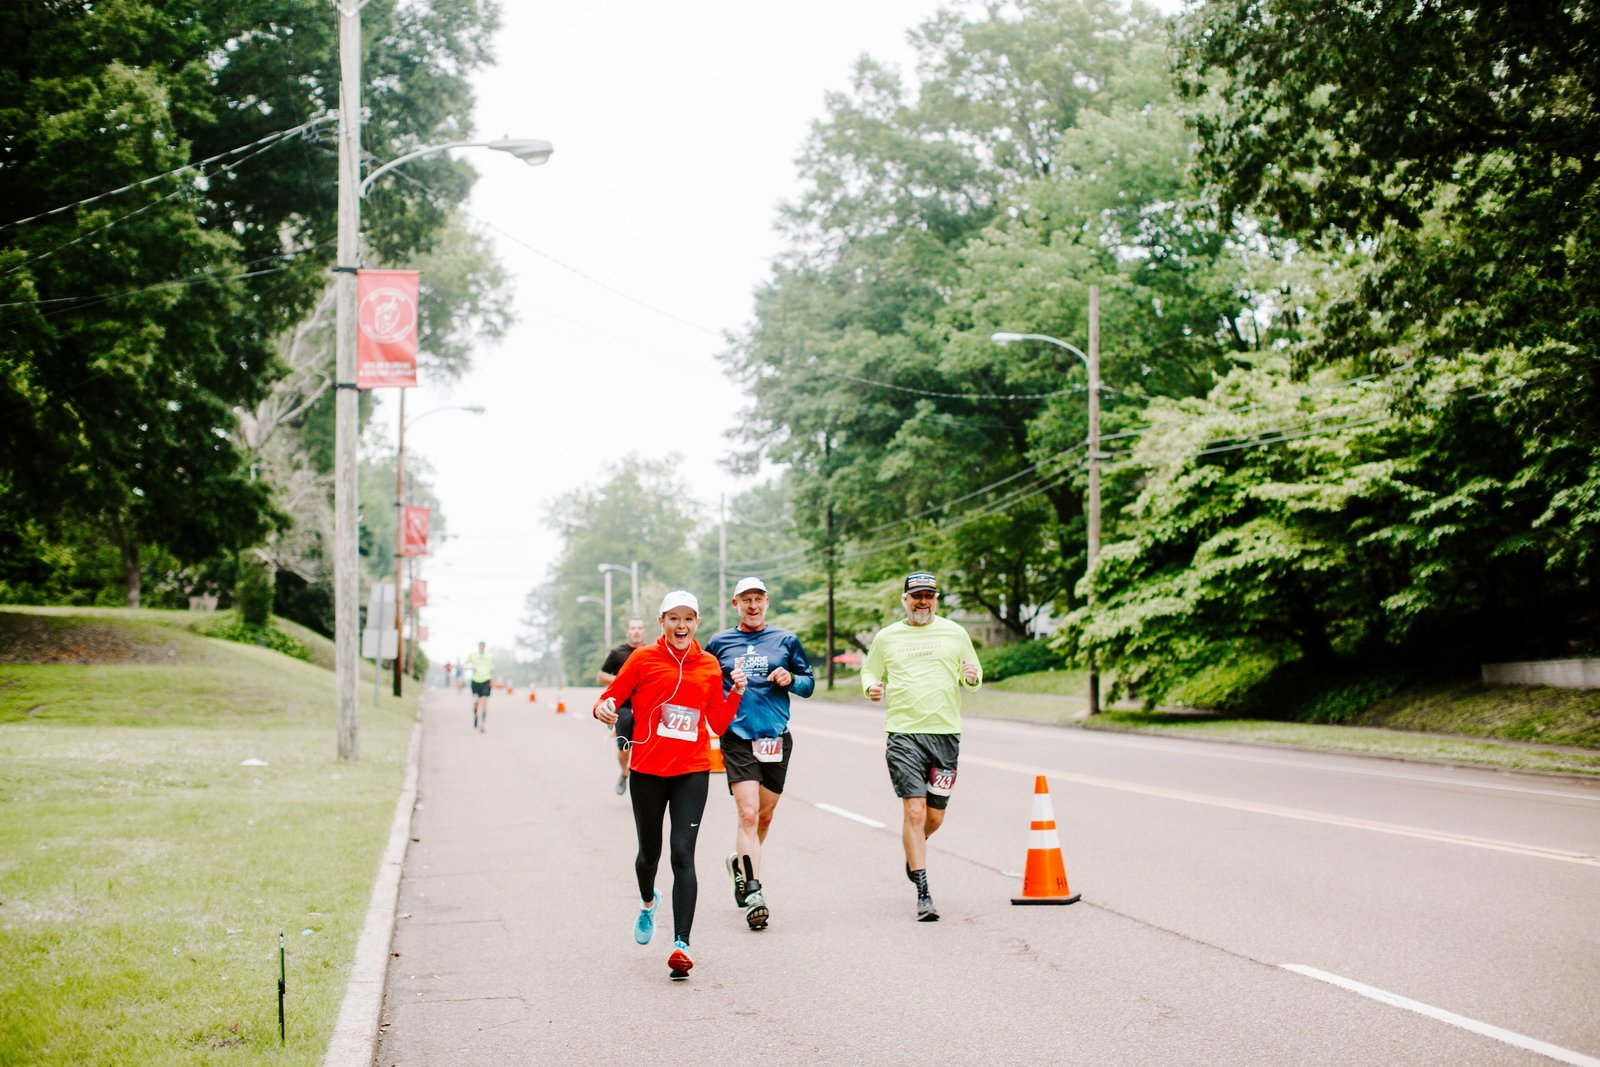 2019 West Tennessee Strawberry Festival - 5k Race - 20